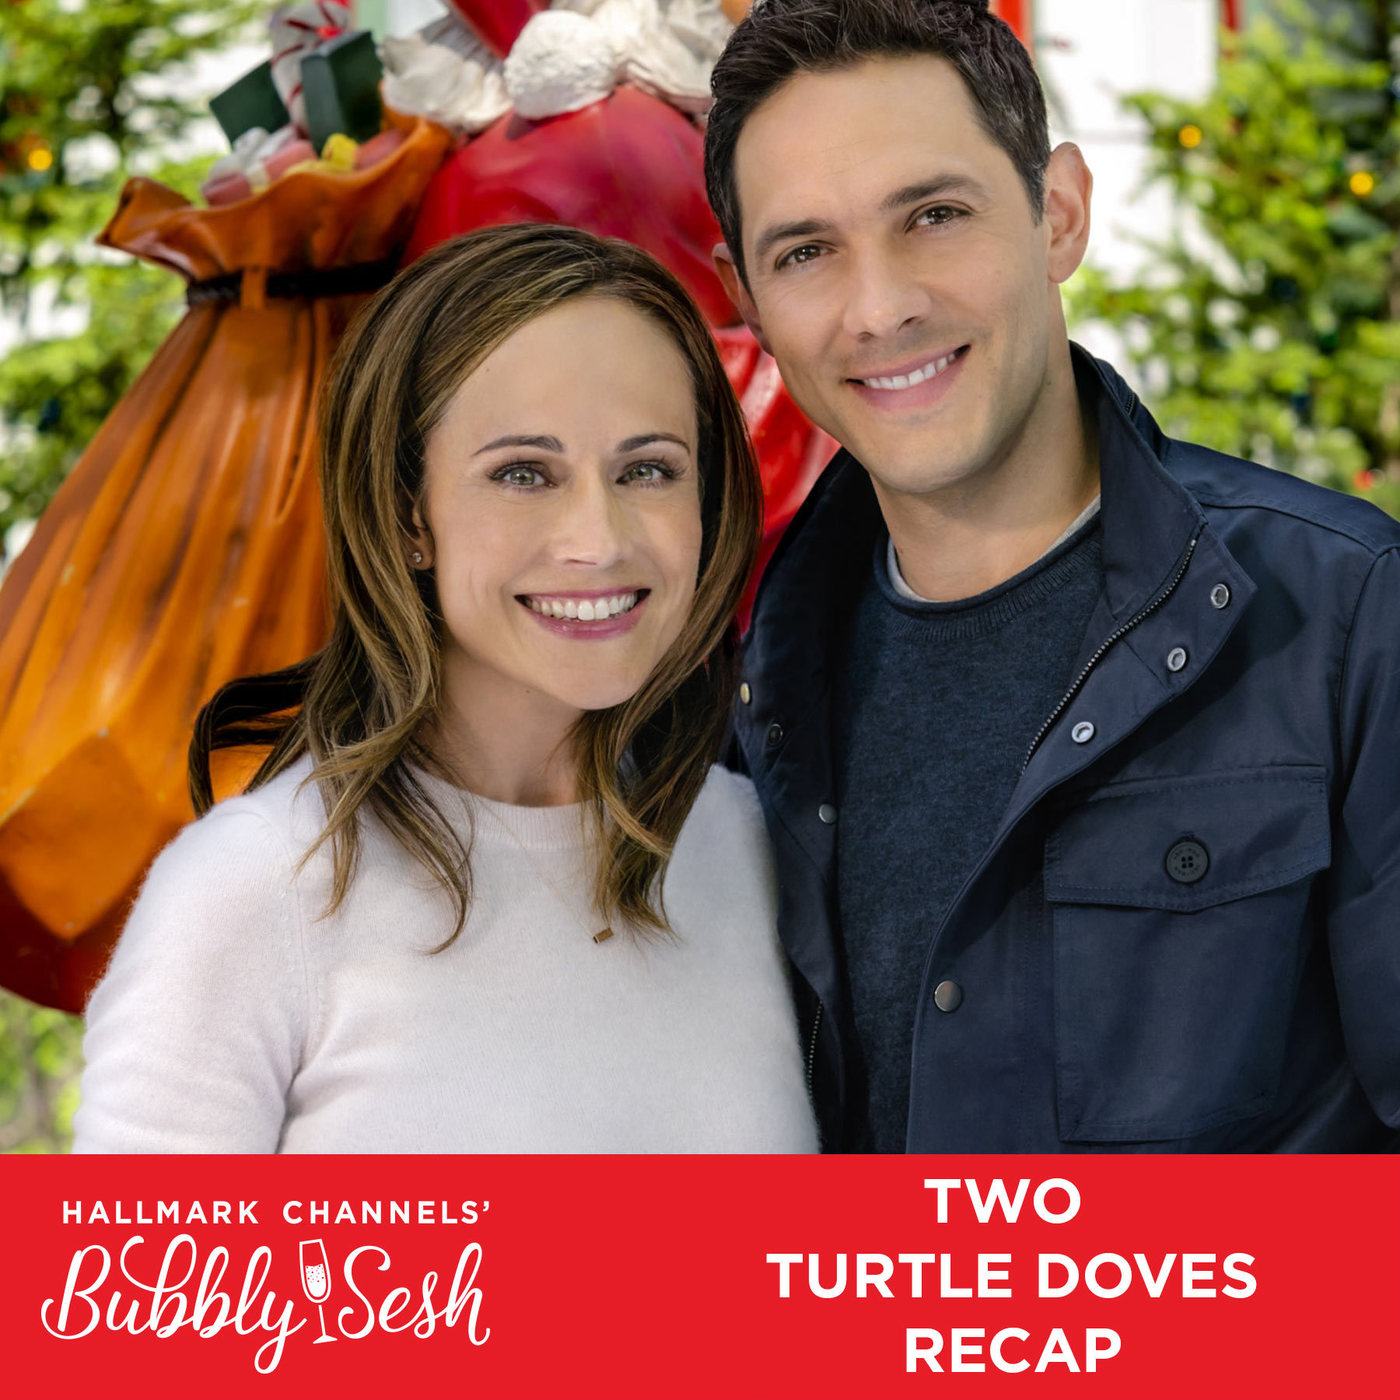 Two Turtle Doves Recap